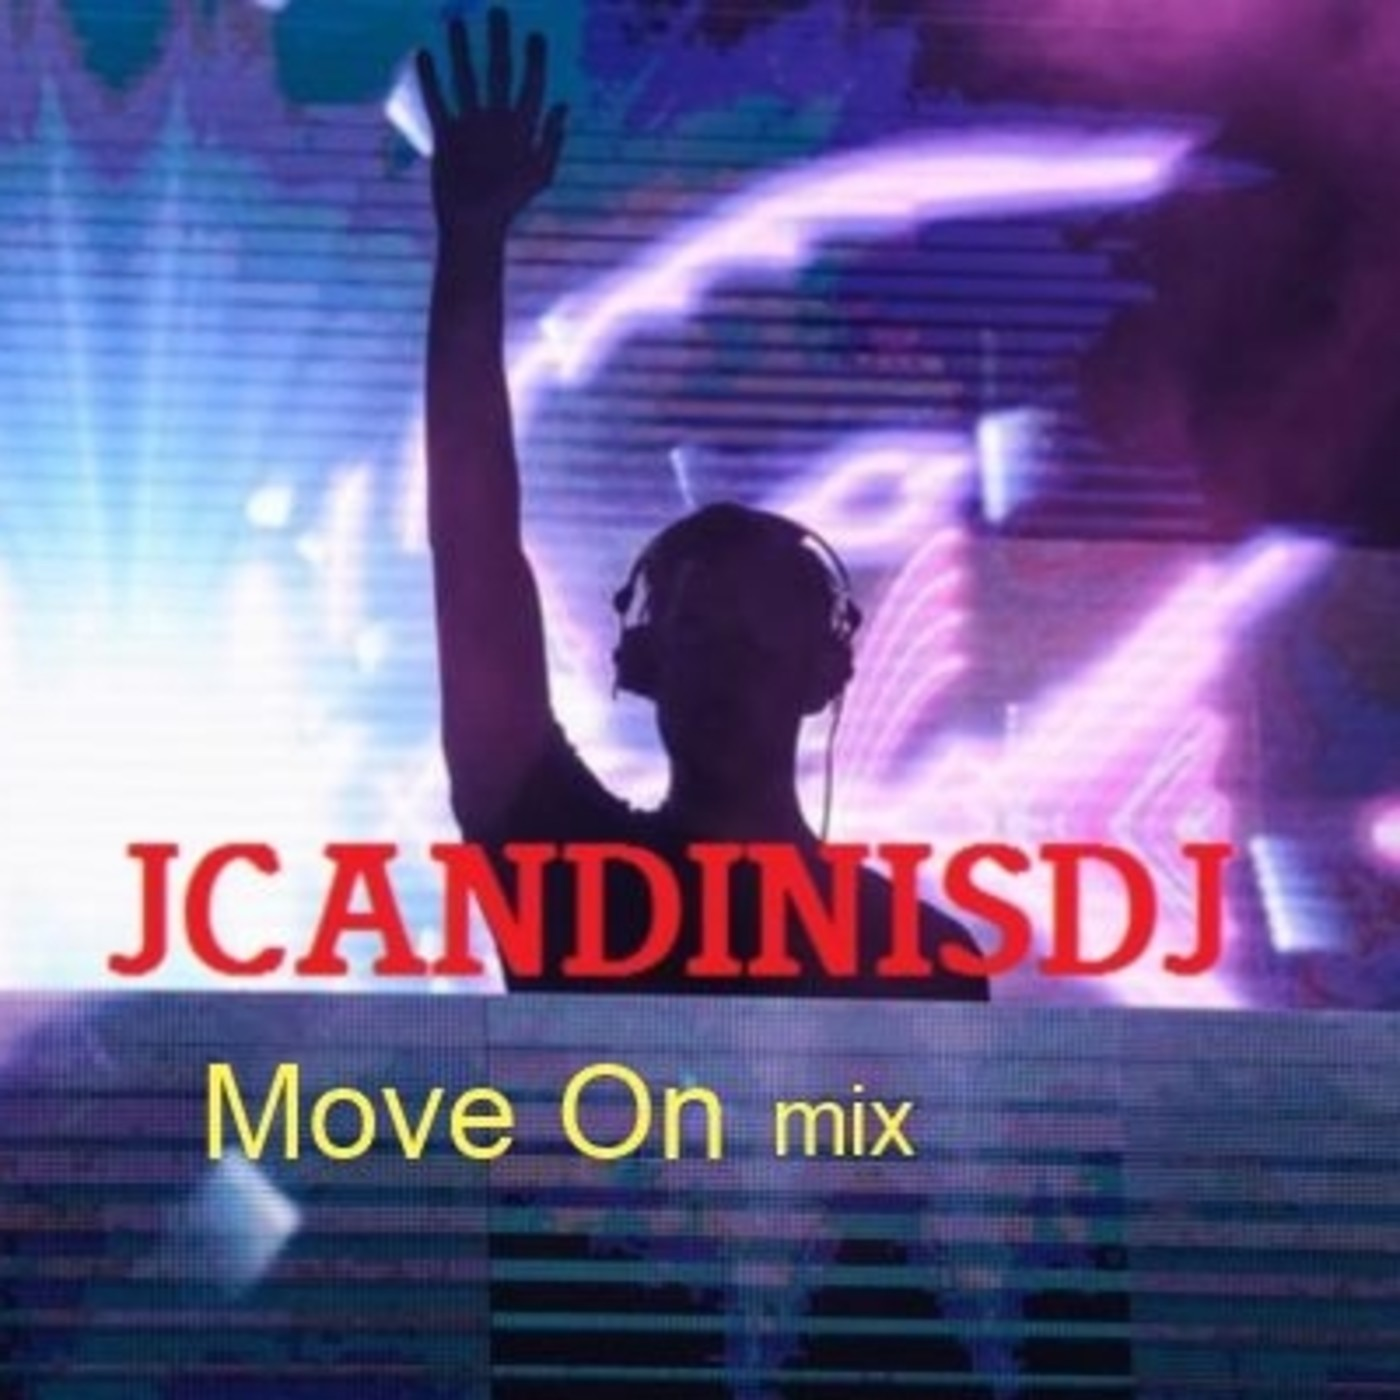 Move On mix